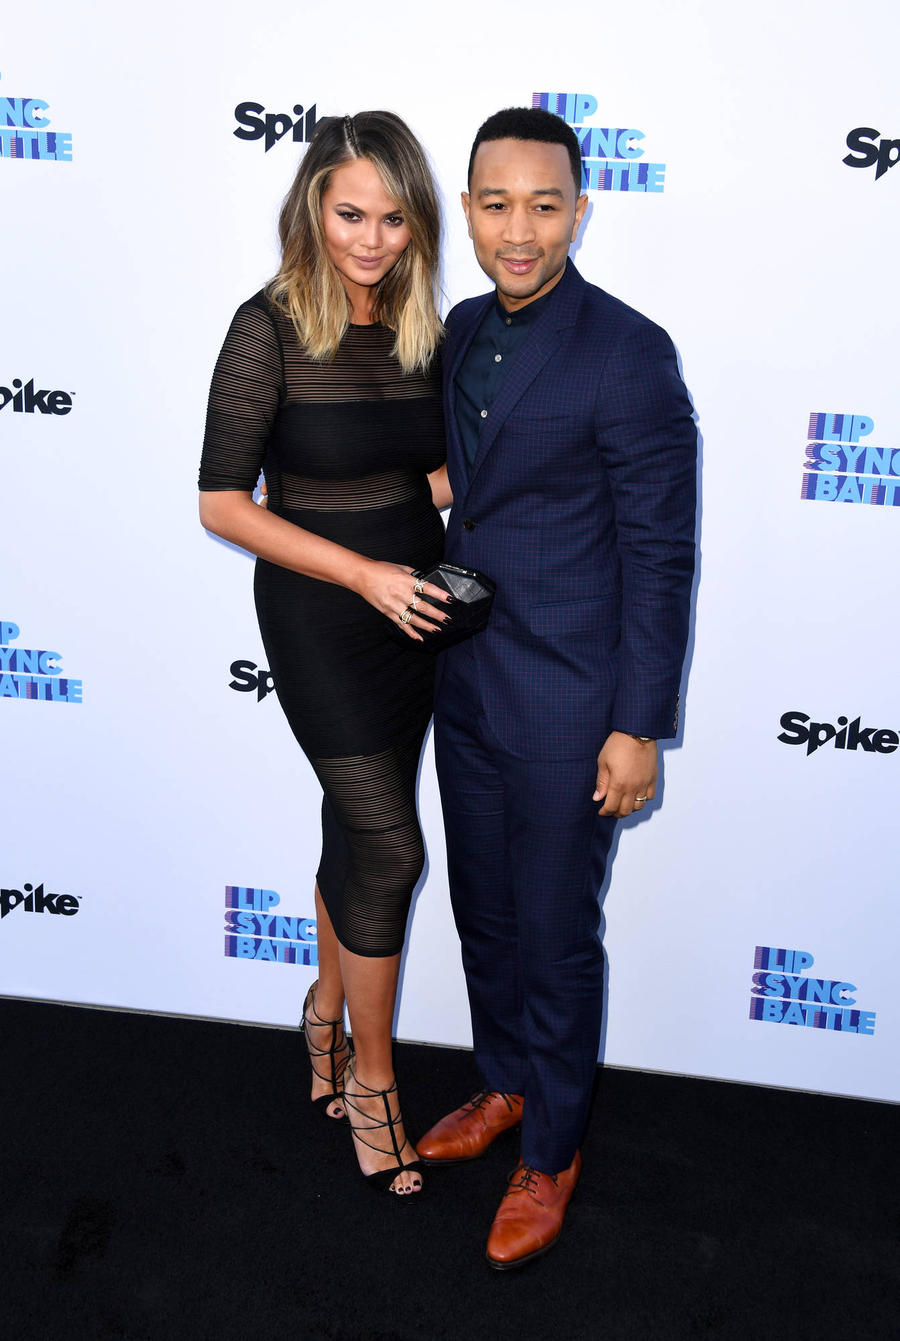 Chrissy Teigen Is Friends With Husband John Legend's Exes